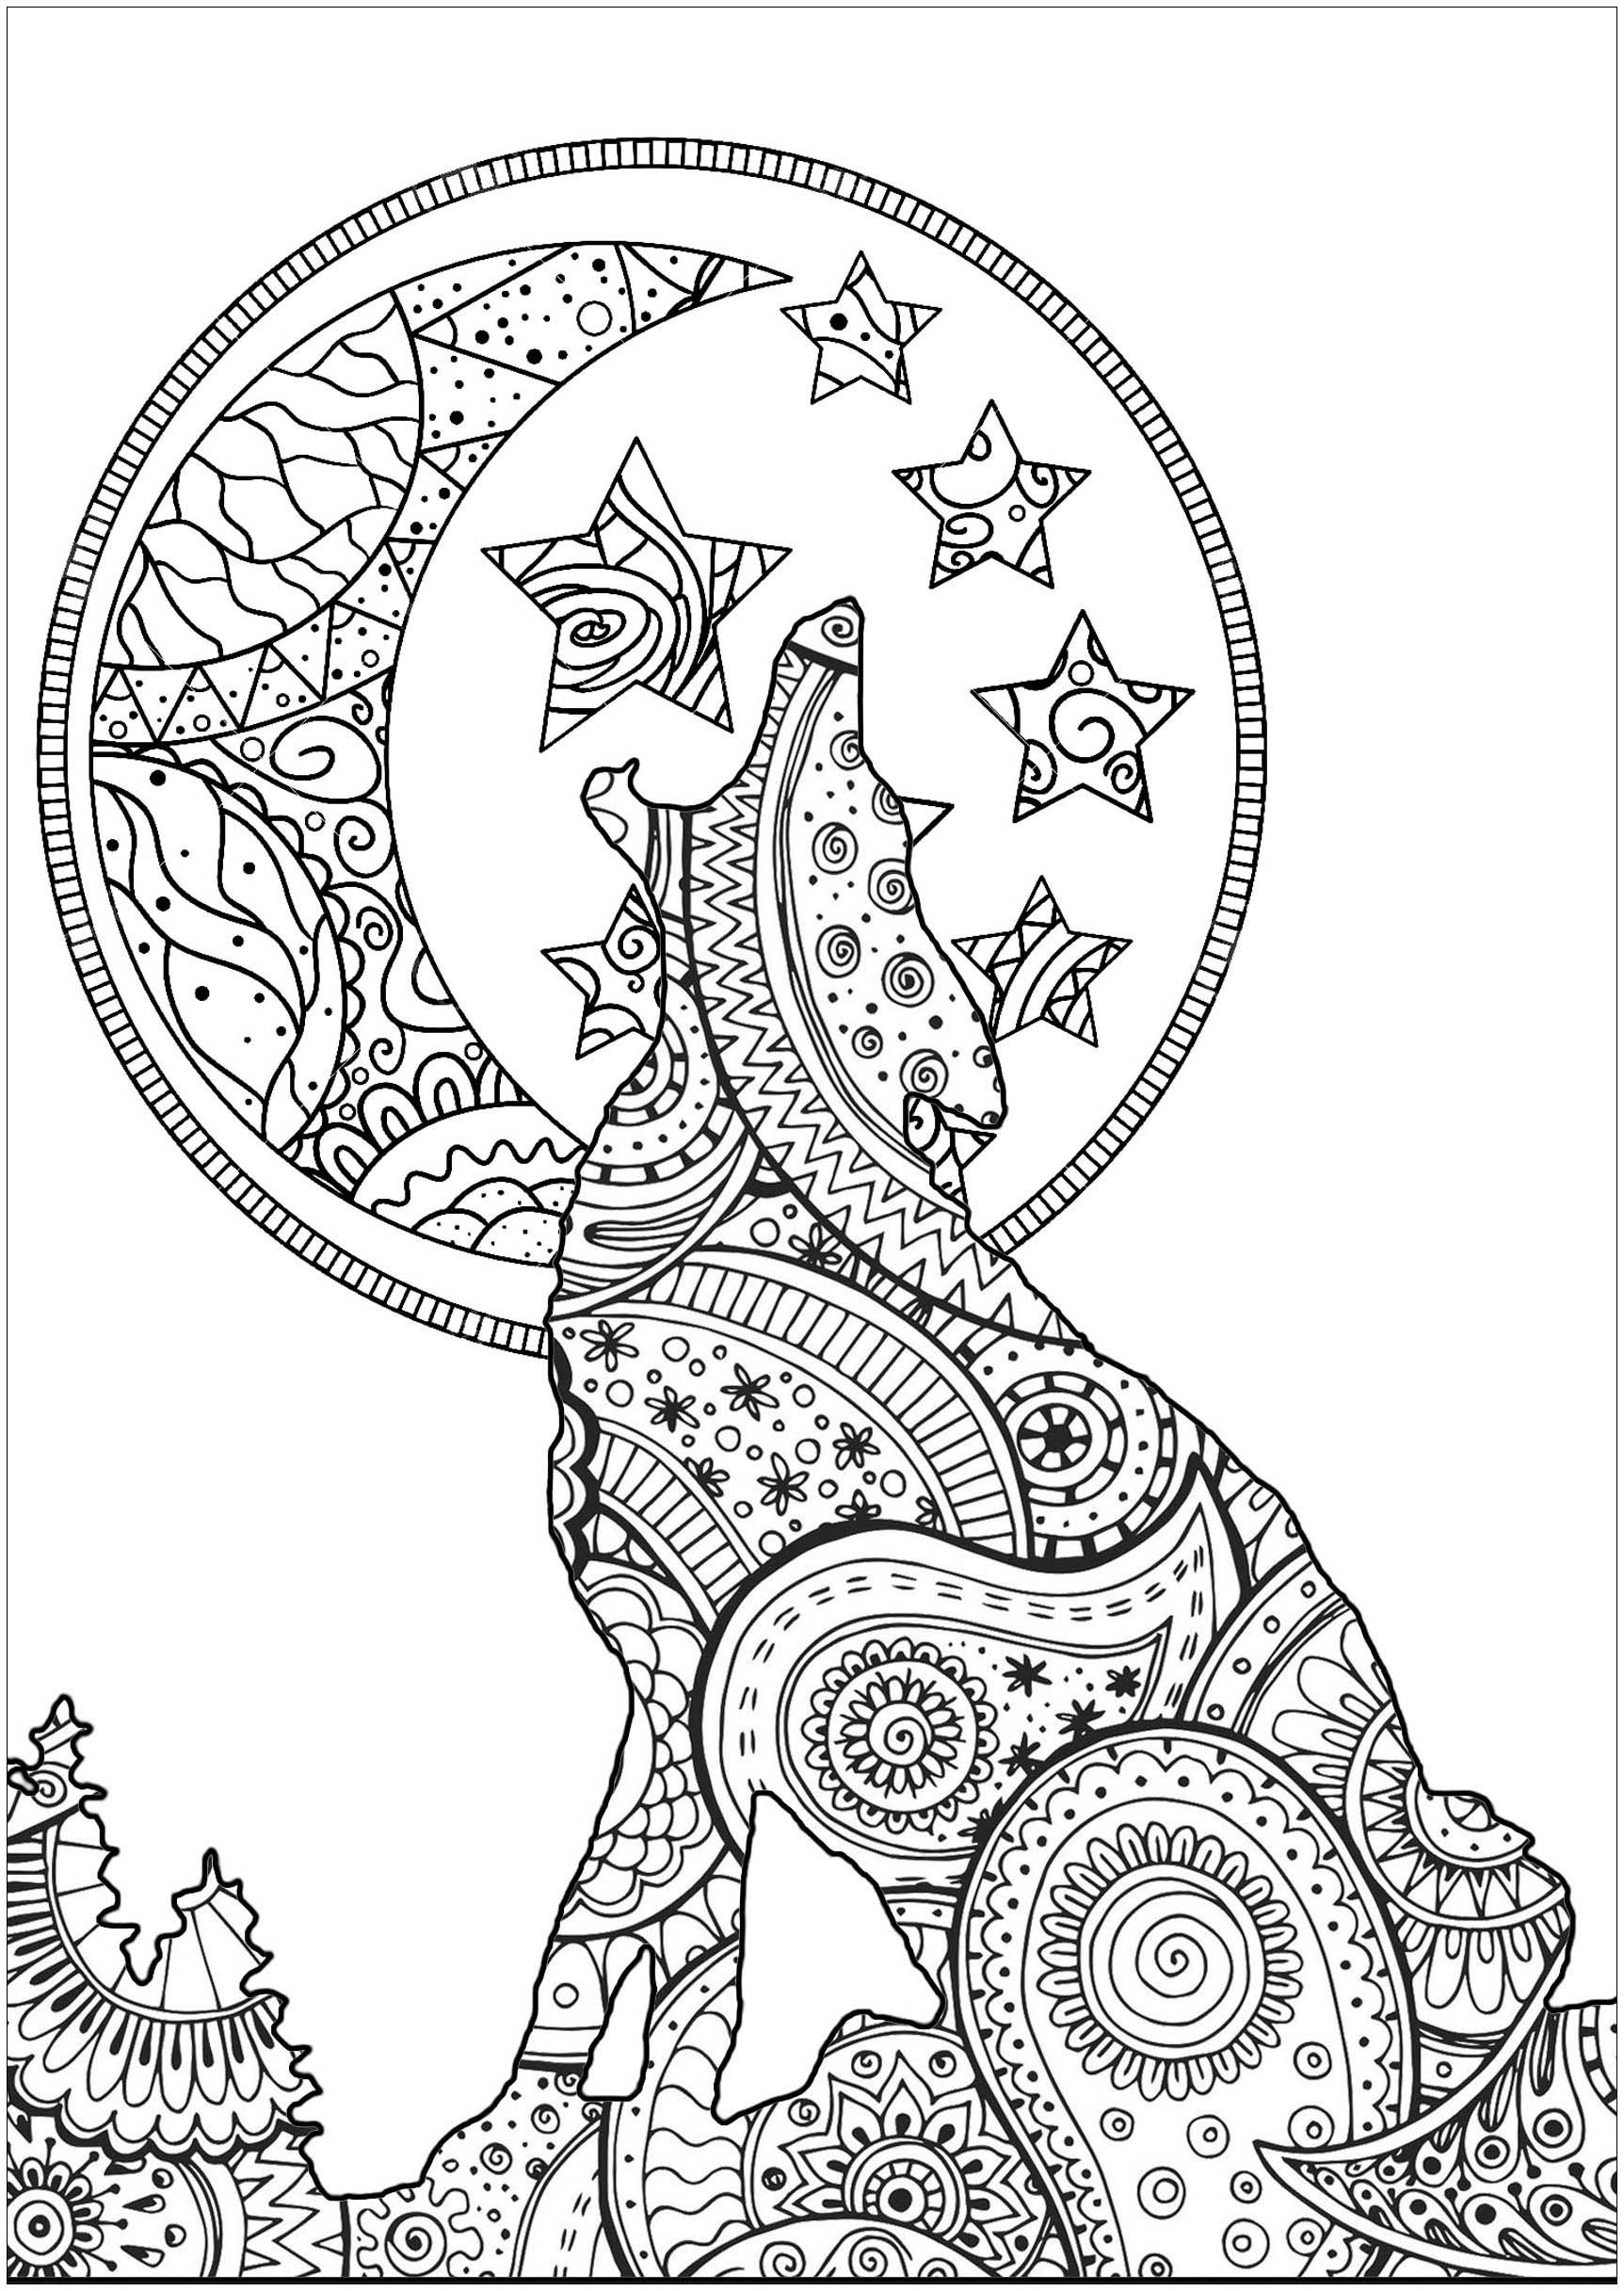 Christmas Coloring Pages Wolf - Lautigamu